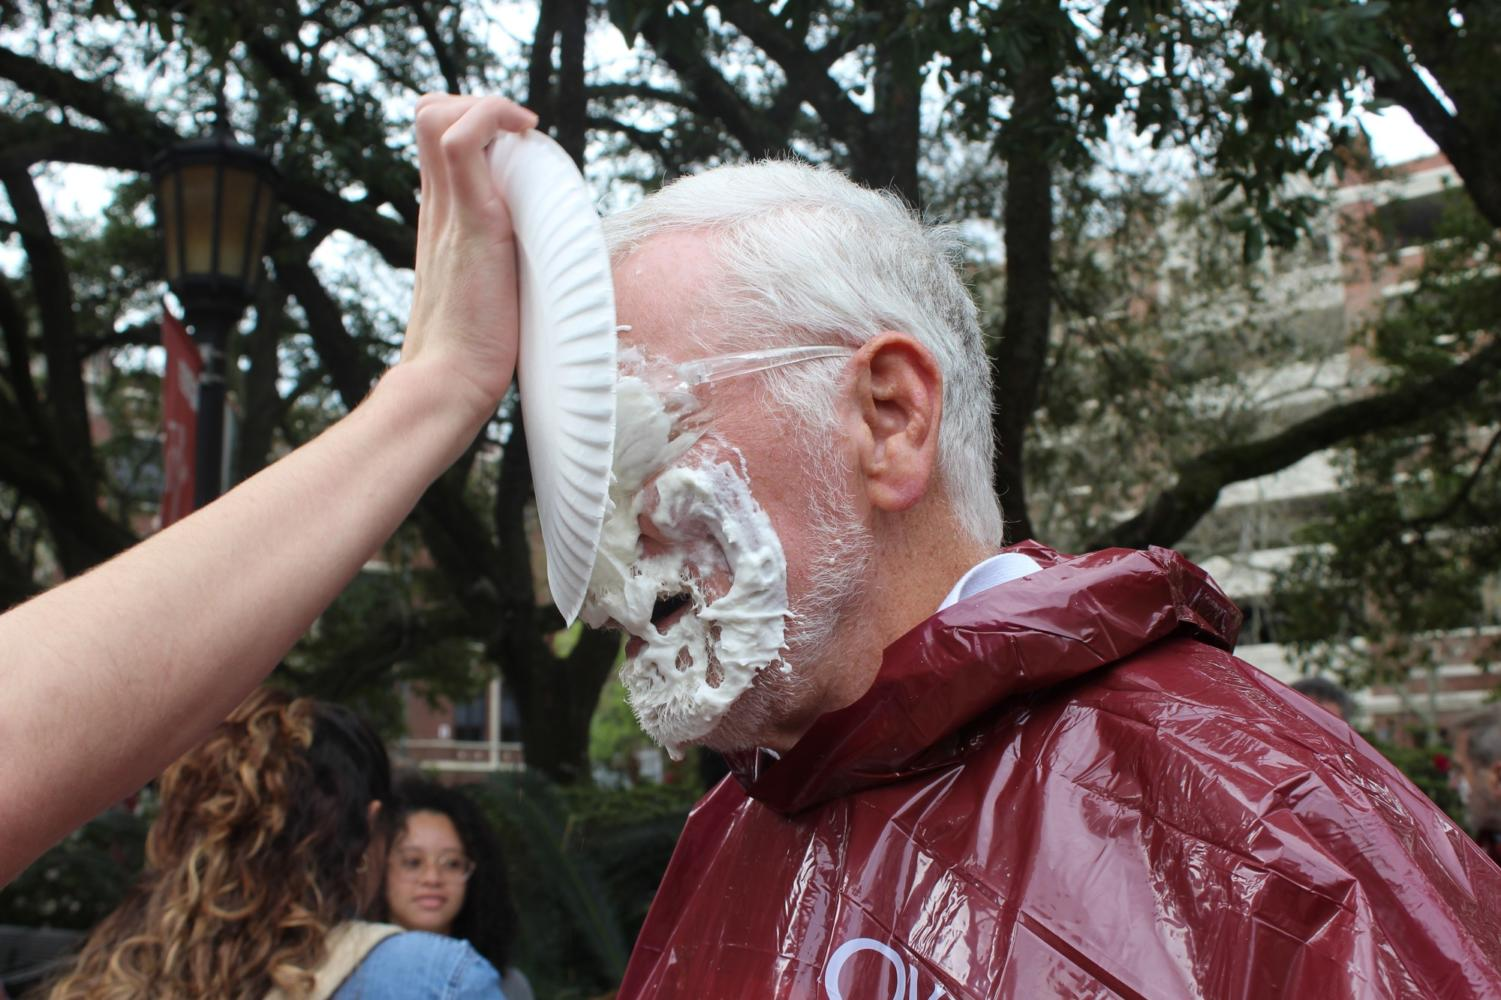 Bob+Thomas%2C+director+of+the+Center+for+Enviornmental+Communication+recieves+a+plate+of+shaving+cream+to+the+face+on+Feb.+26.+The+pieing+was+part+of+a+University+Honors+Association+event+that+asked+students+to+donate+%241+to+the+Gulf+Restoration+Network+in+exchange+for+pieing+a+participating+professor.+